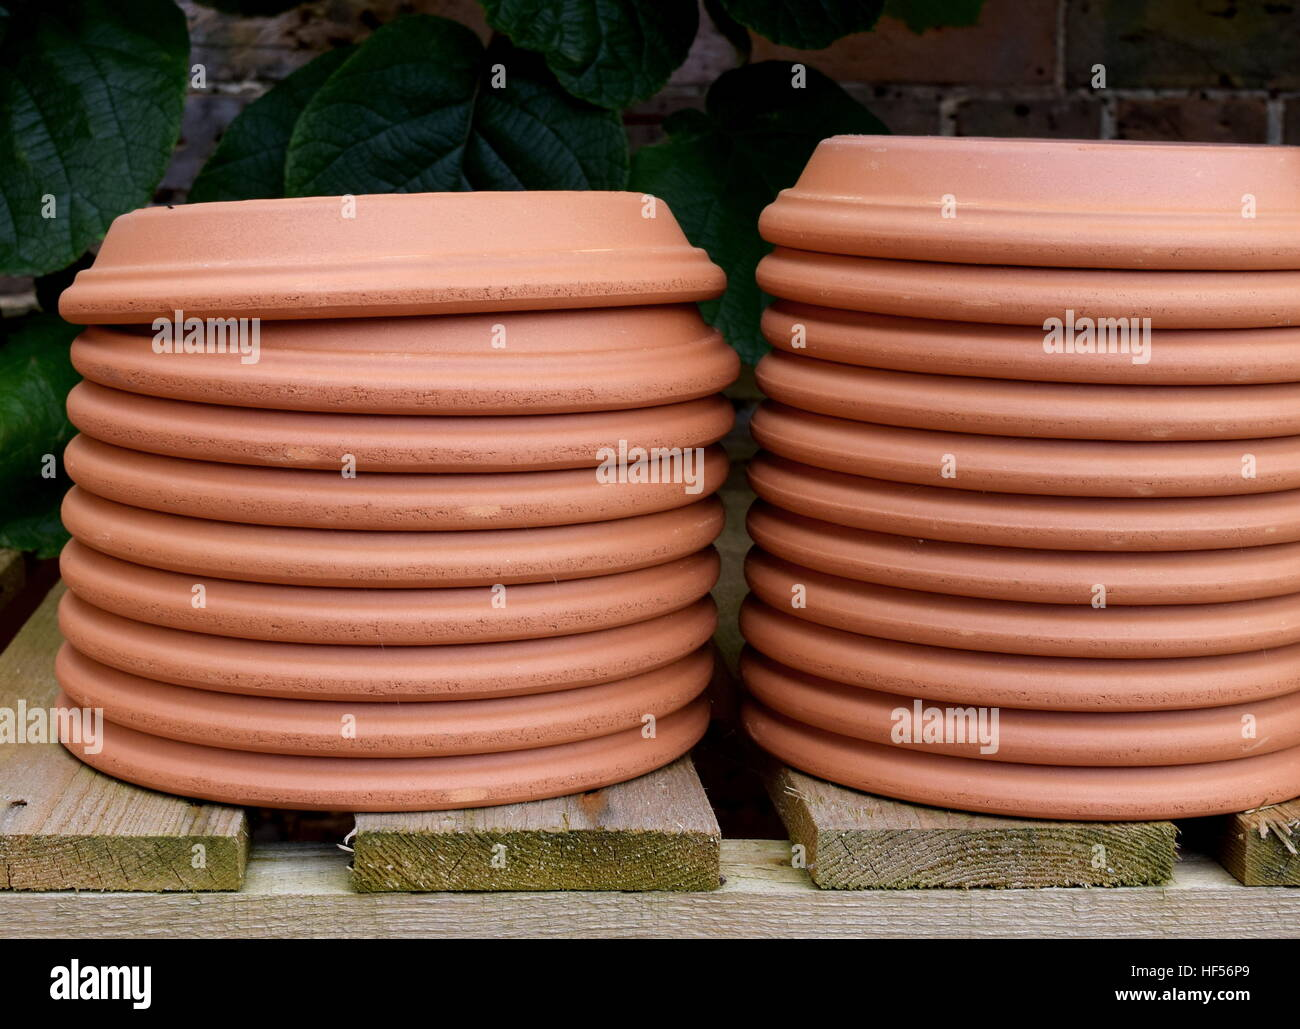 Stack of upturned terracotta garden saucers on wooden shelf - Stock Image